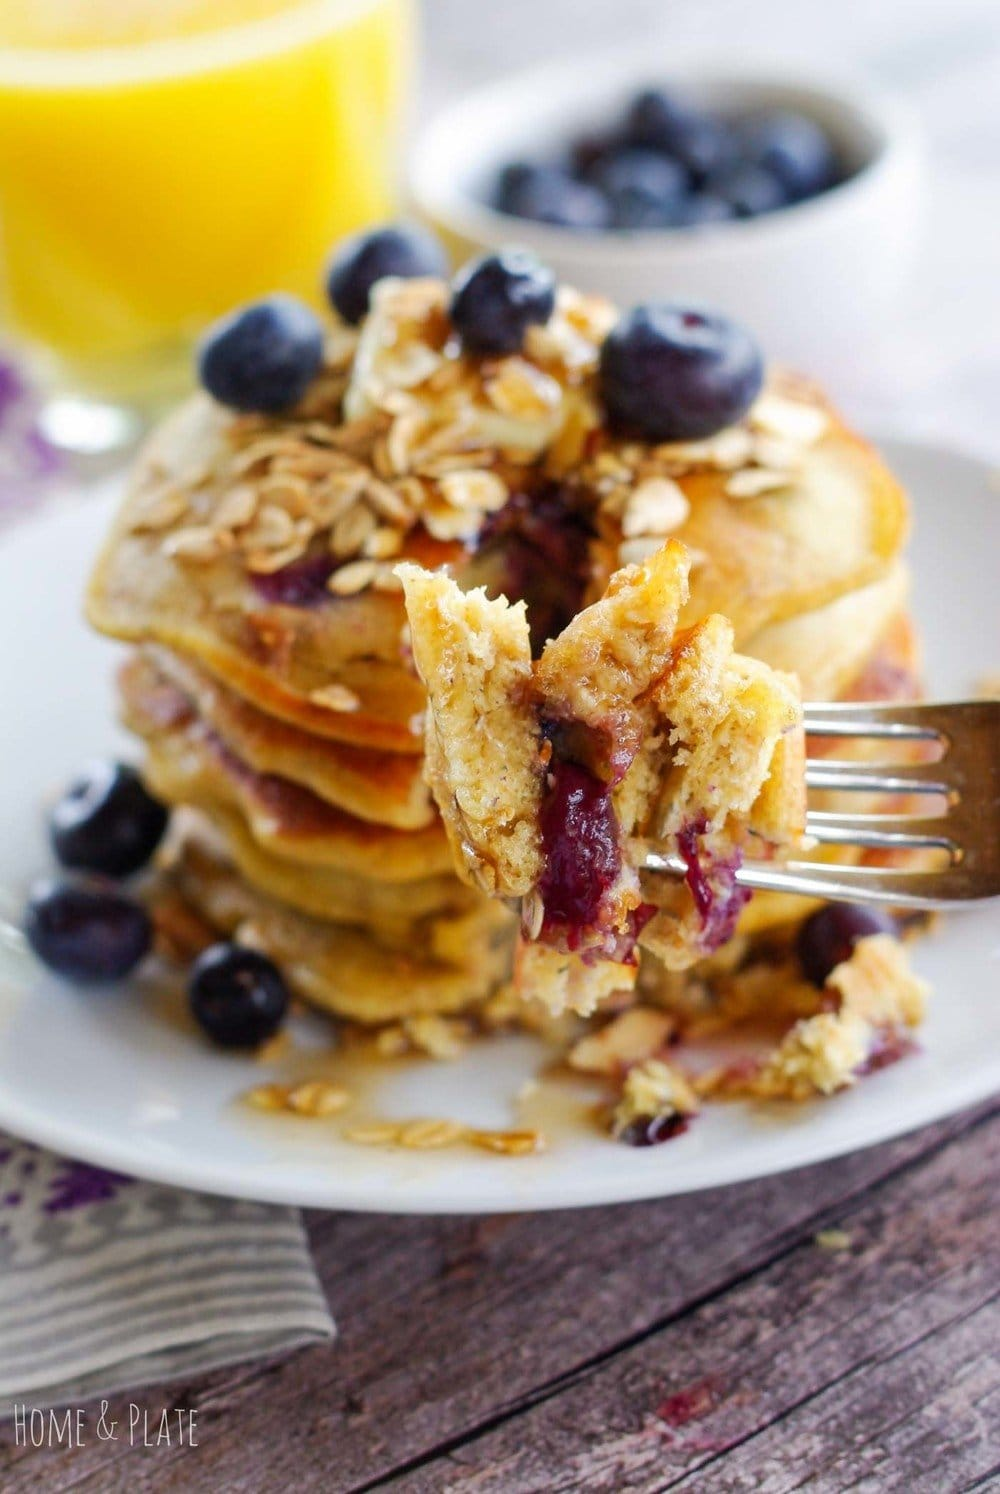 Blueberry Granola Pancakes | www.homeandplate.com |Add a little crunch to your morning routine by adding granola to your standard blueberry pancakes.